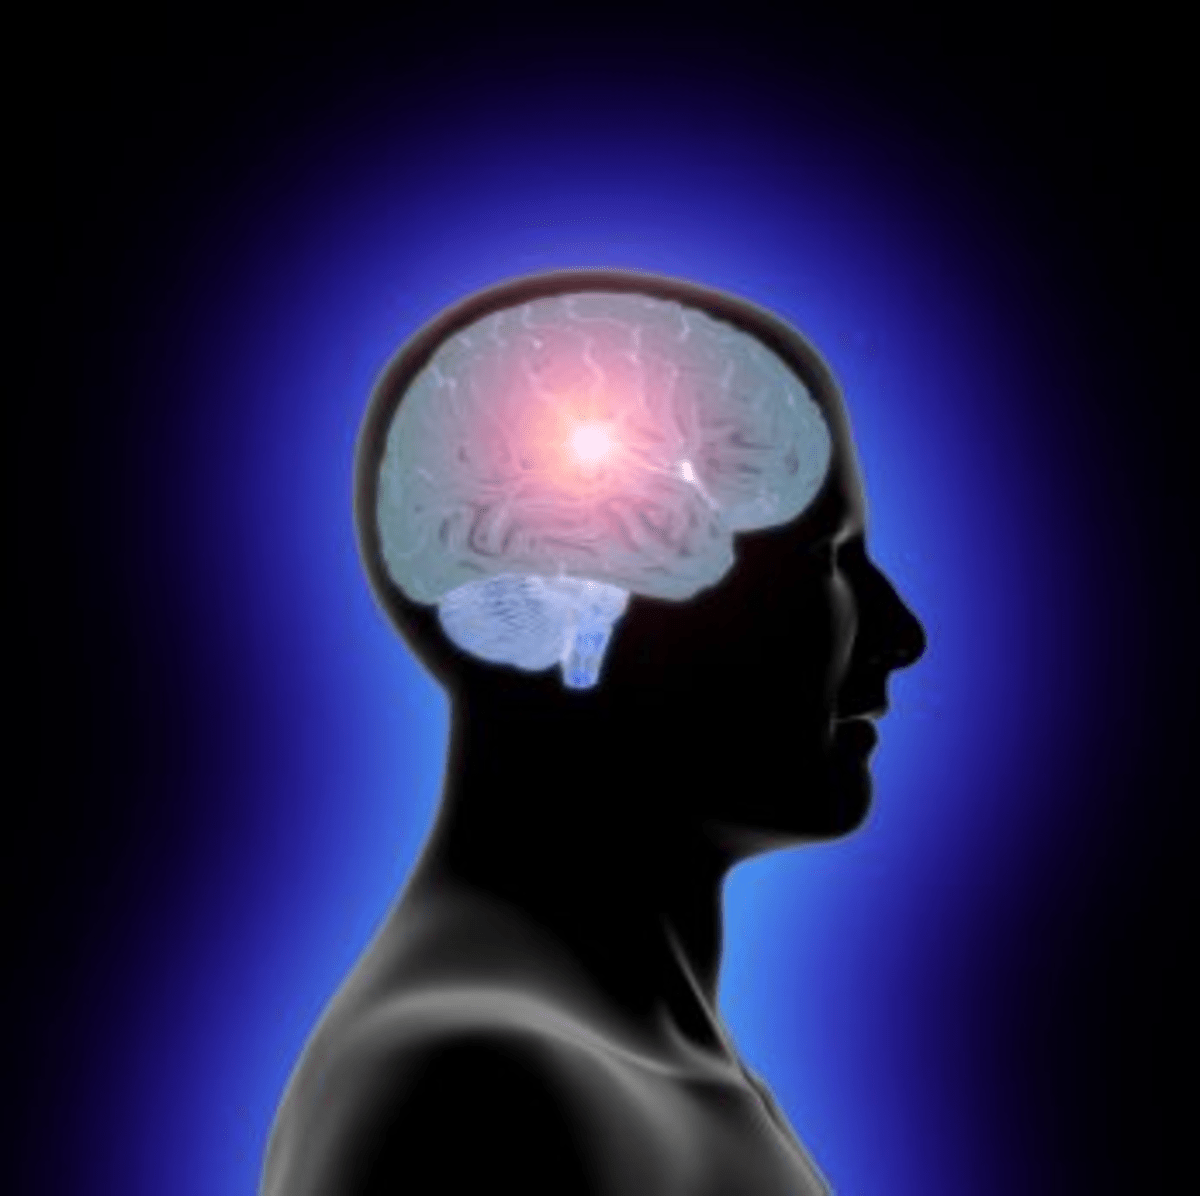 Profile of a man's head and a translucent brain with an inner glow